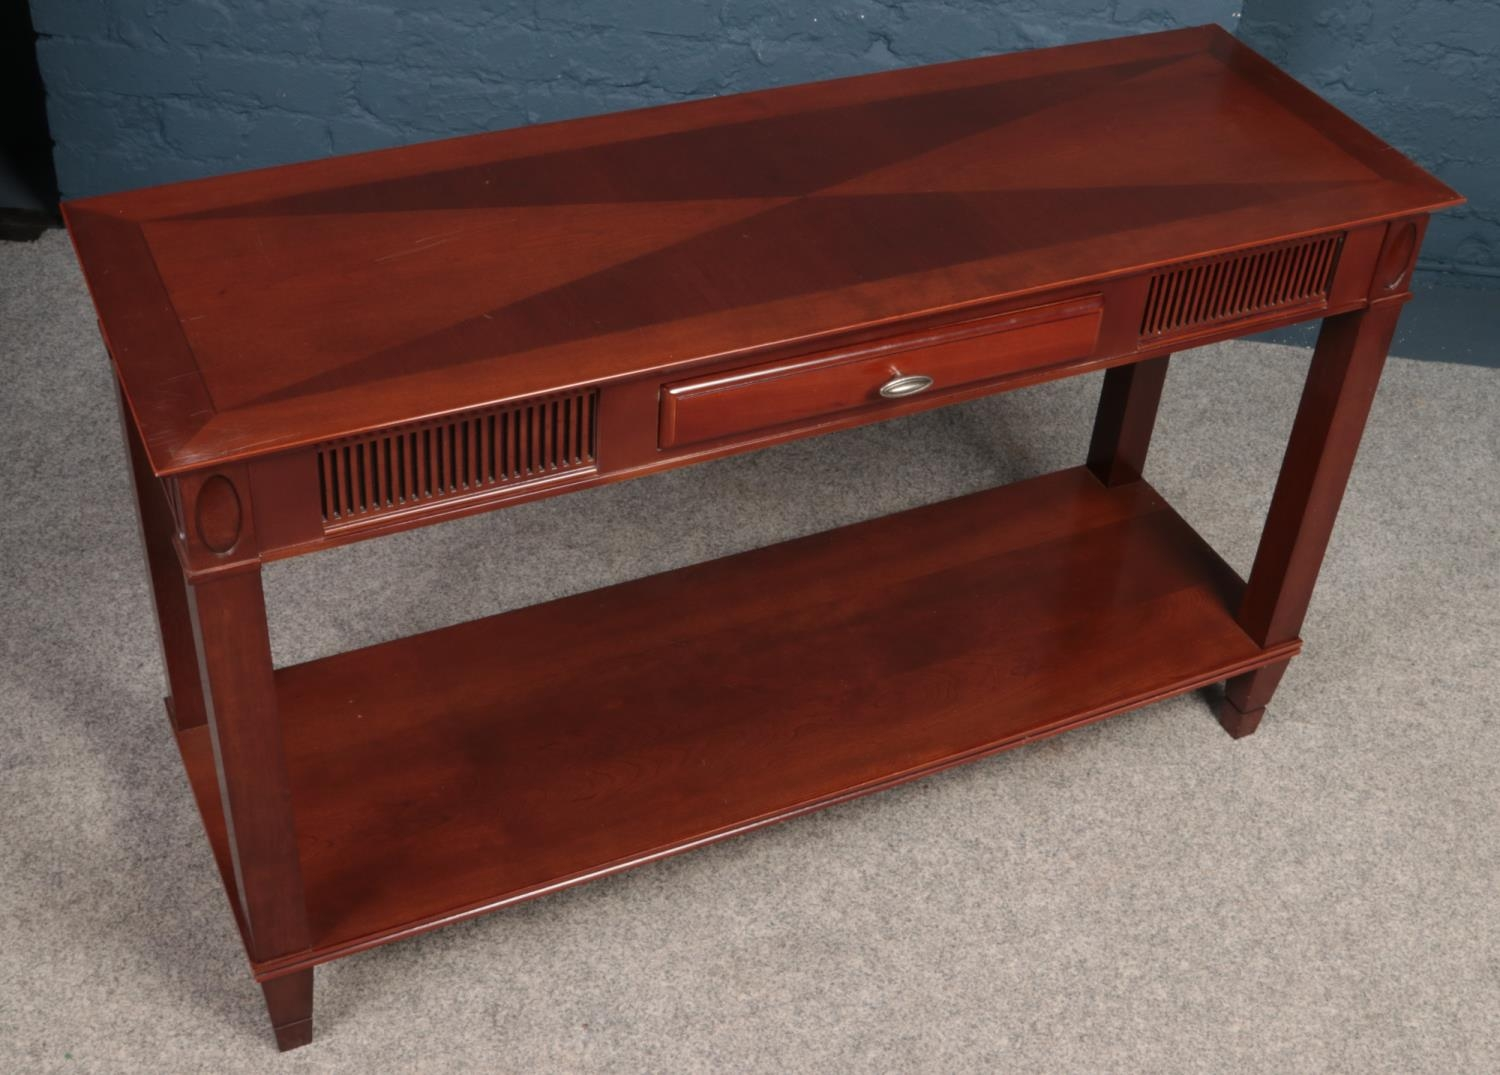 A Mahogany console table with central drawer. Made by (Theseira). H:71.5cm, W:120cm, Condition good. - Image 2 of 2